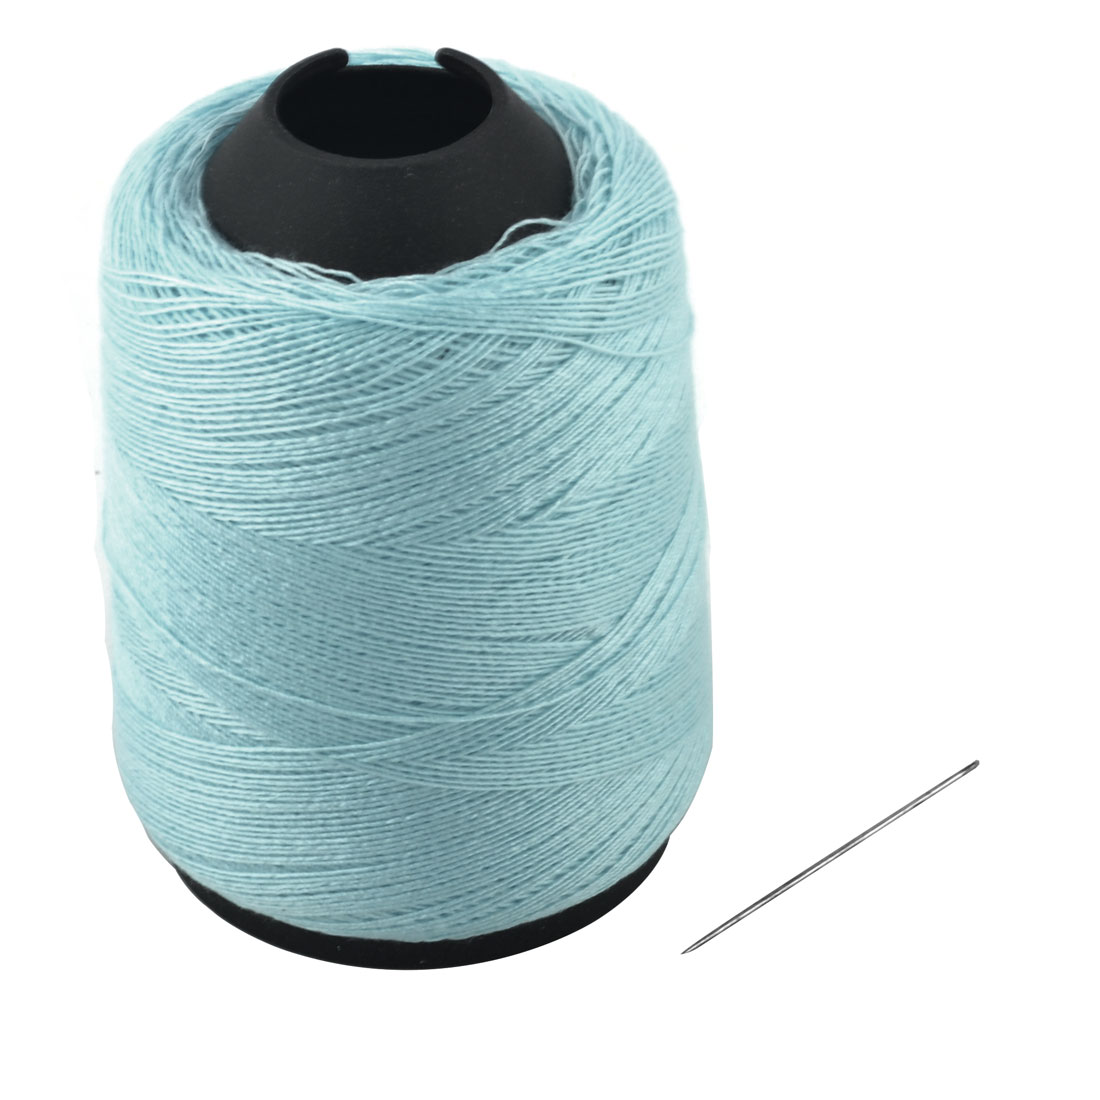 Tailor Polyester Tower Shape Crafting Clothing Sewing Thread Reel Blue